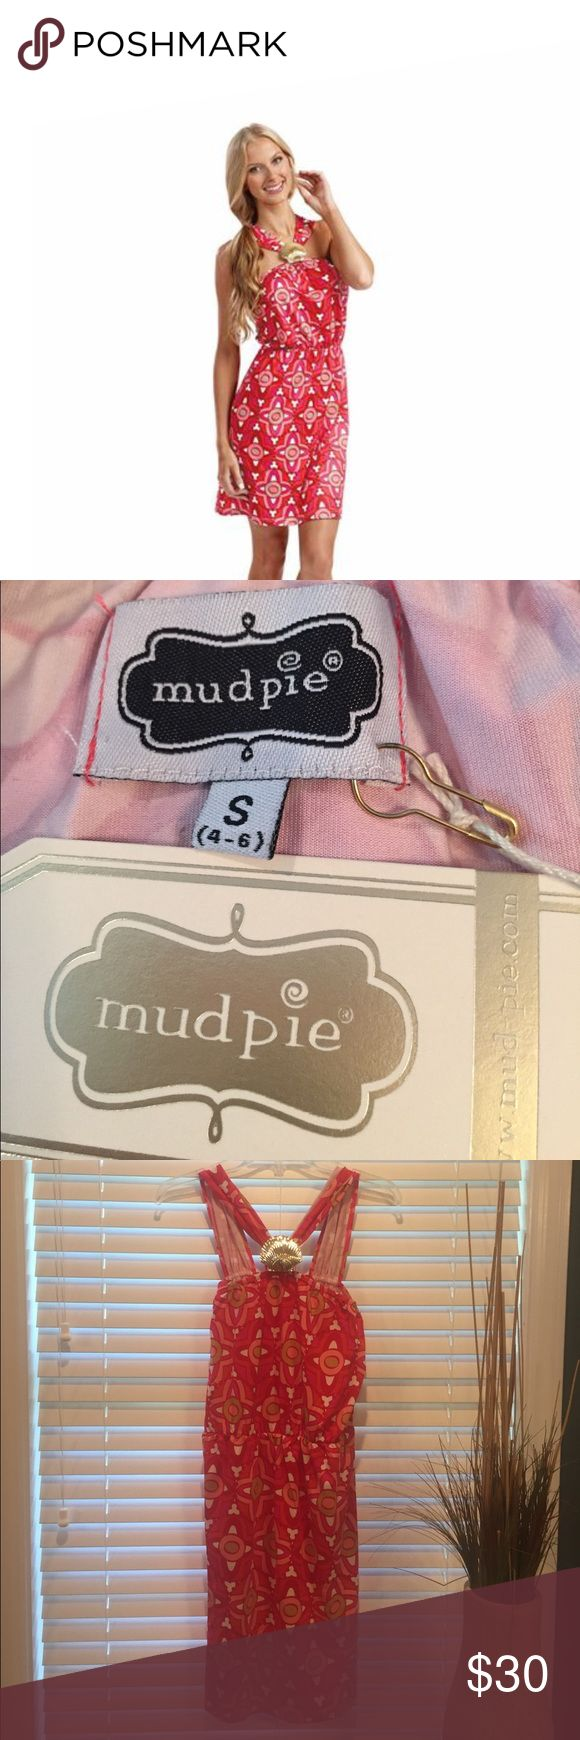 Mud Pie dress Super cute! New with tags! Size Small (4-6) Mud Pie Dresses